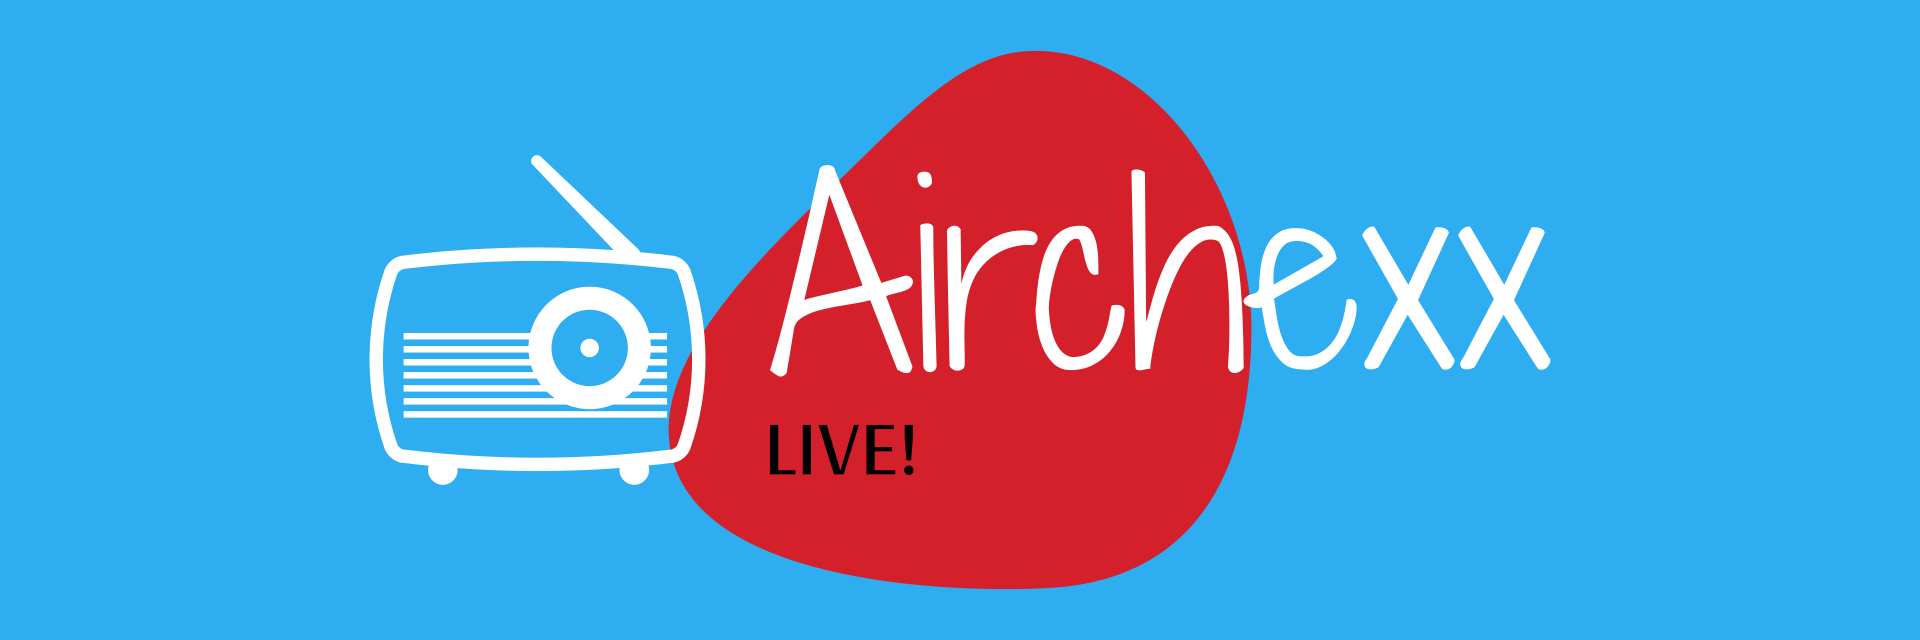 Logo for Airchexx Live!